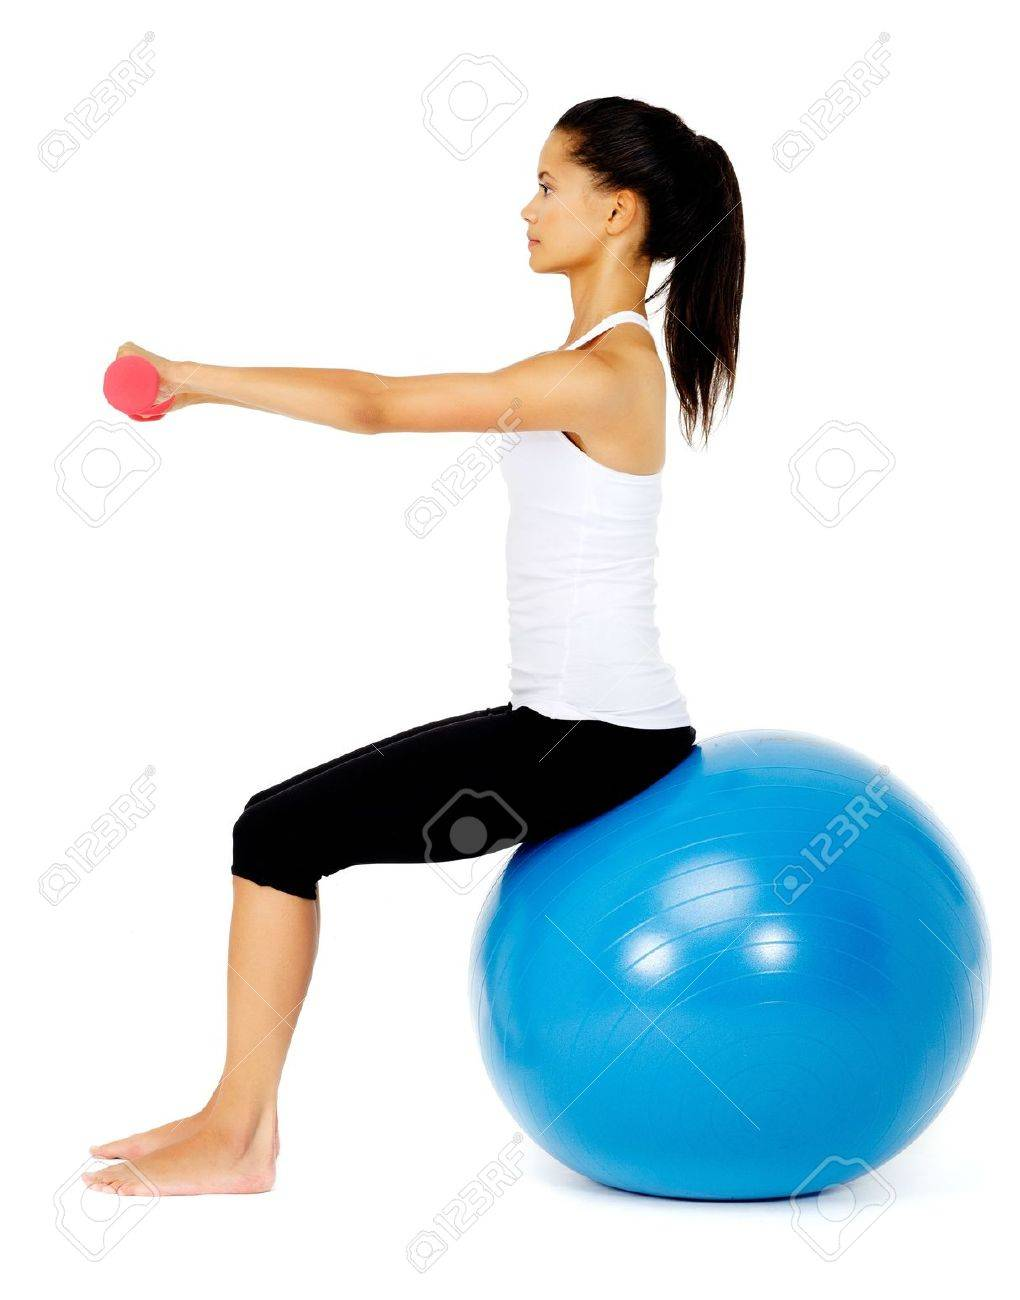 Happy fit asian woman sitting on a gym ball while lifting dumbbells, isolated on white with pilates ball Stock Photo - 13183432